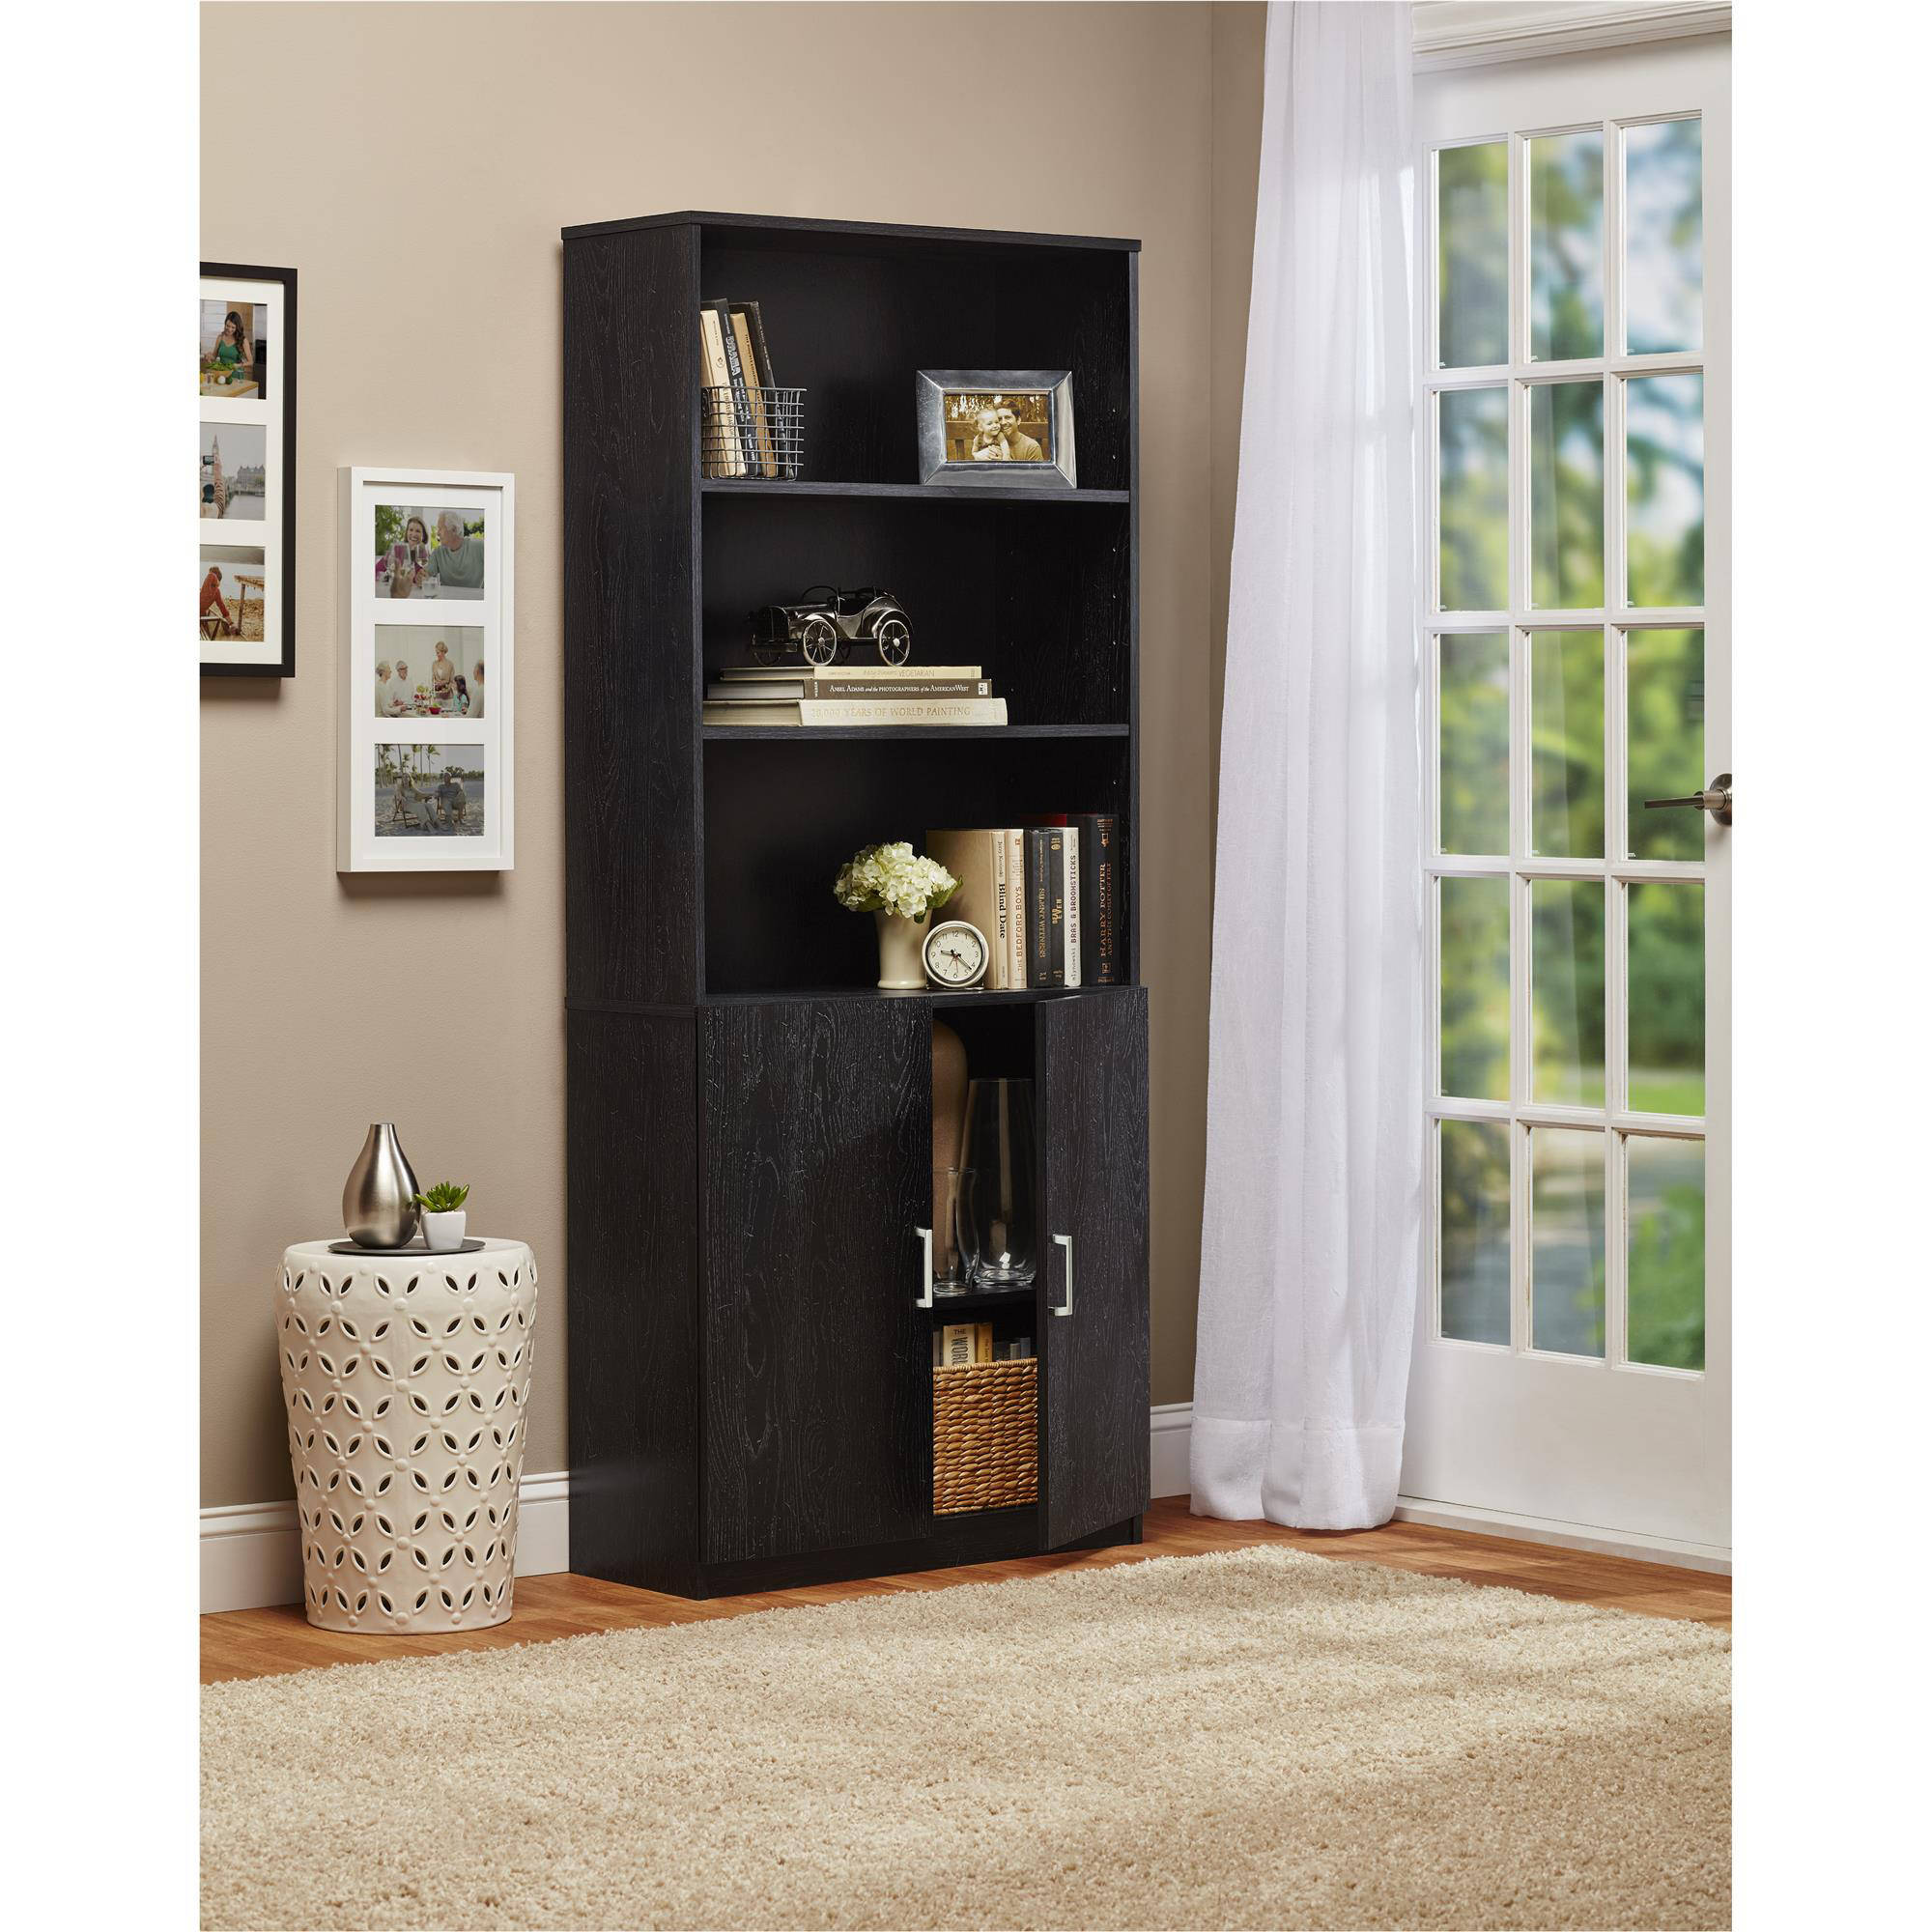 Ameriwood 3 Shelf Bookcase With Doors   Walmart.com